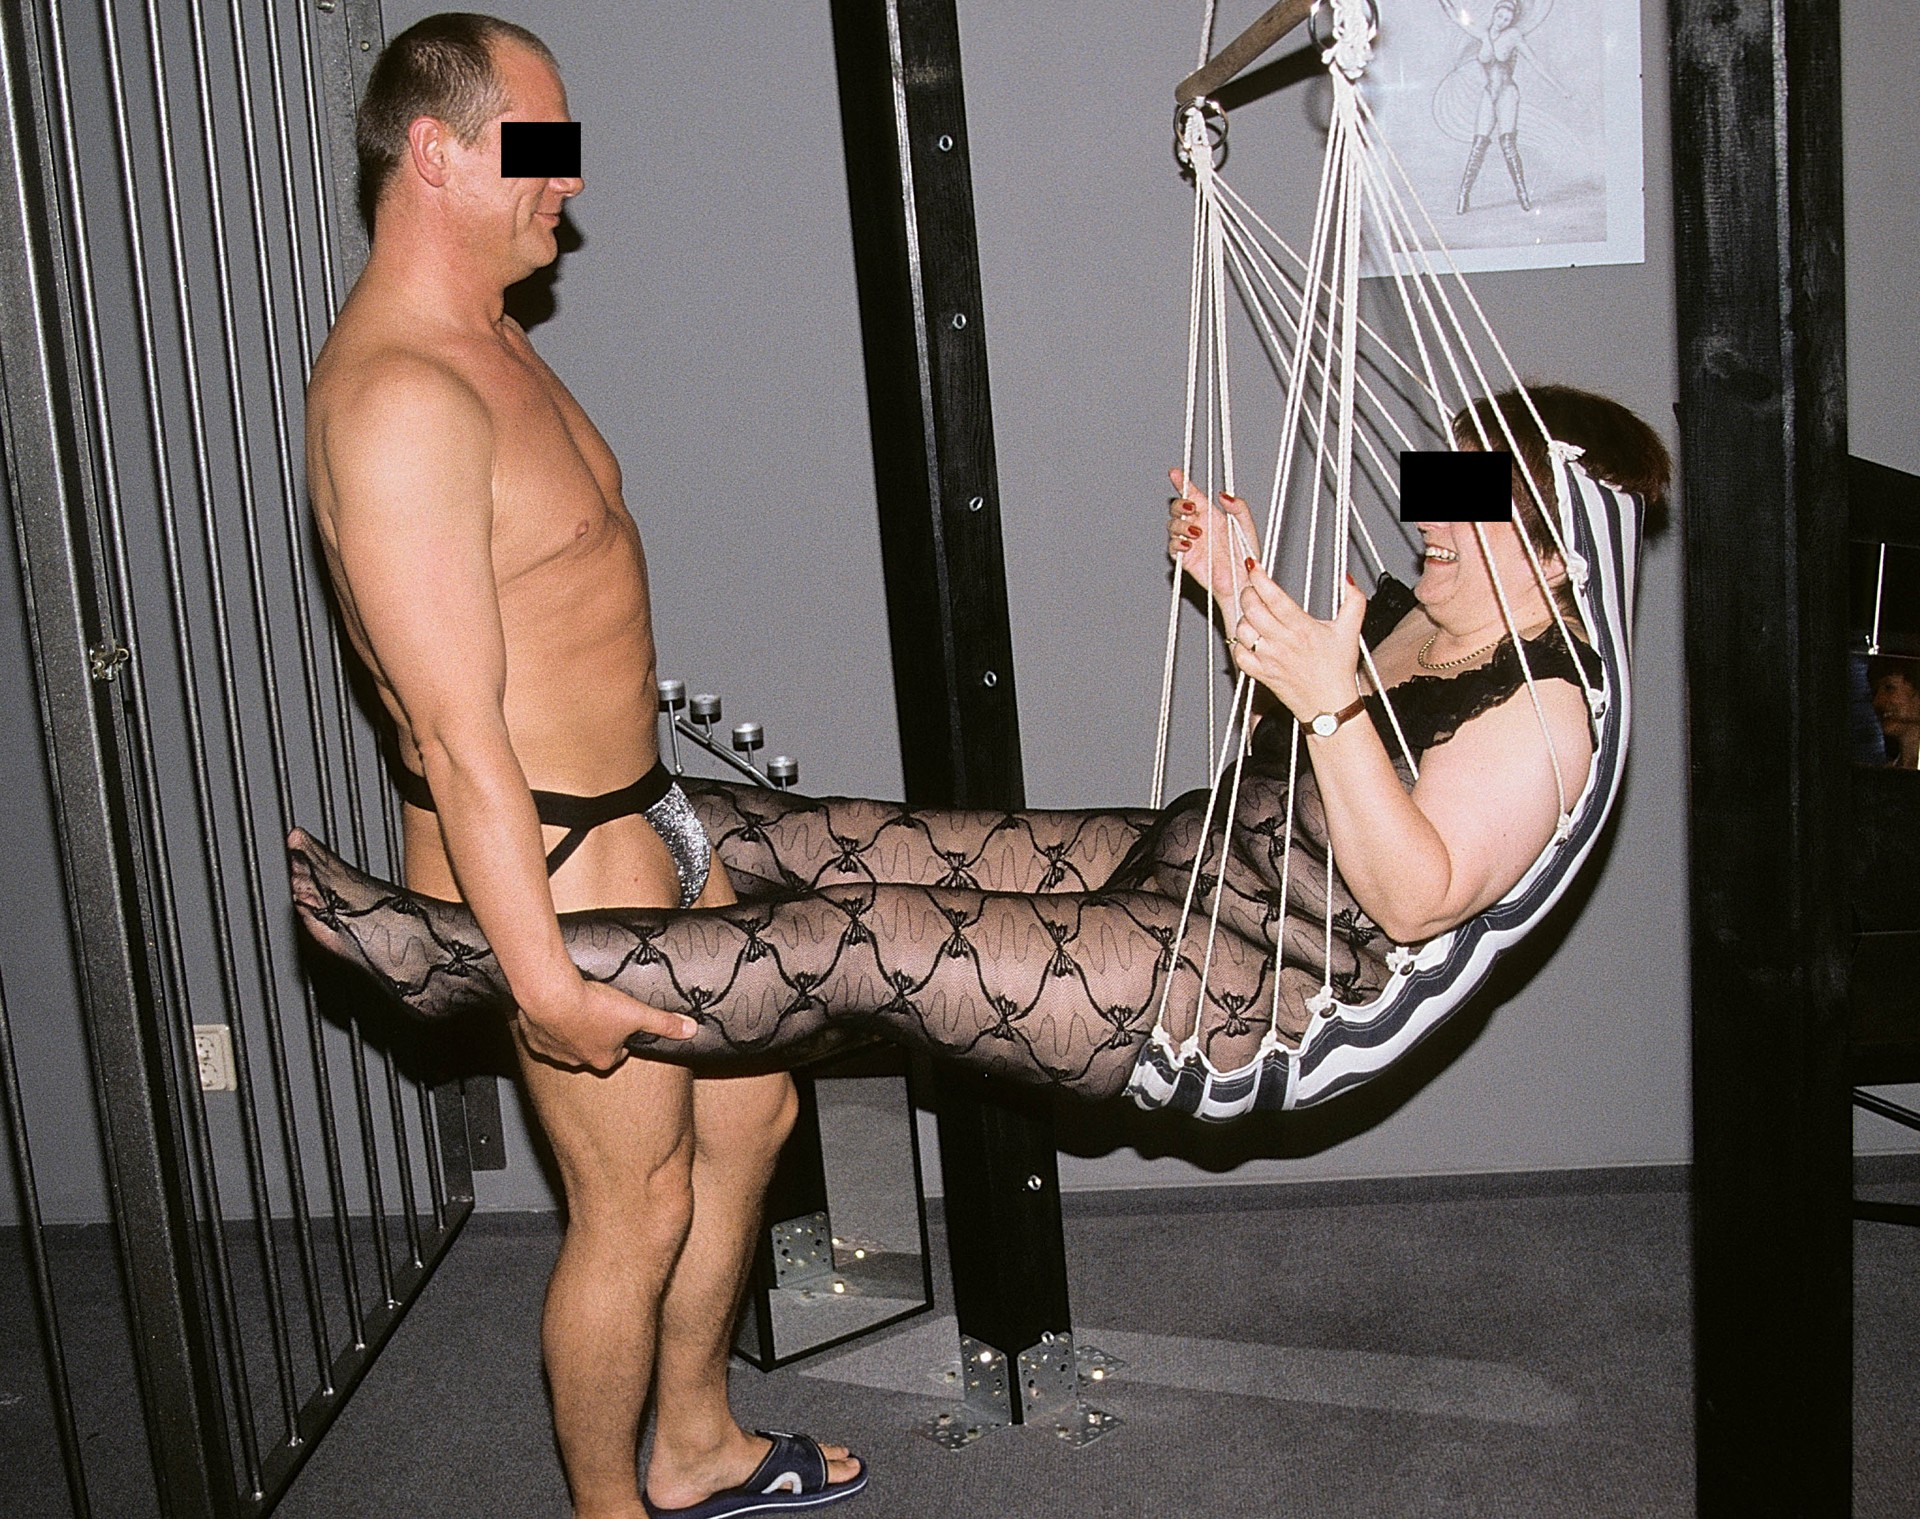 leipzig sex swinger party